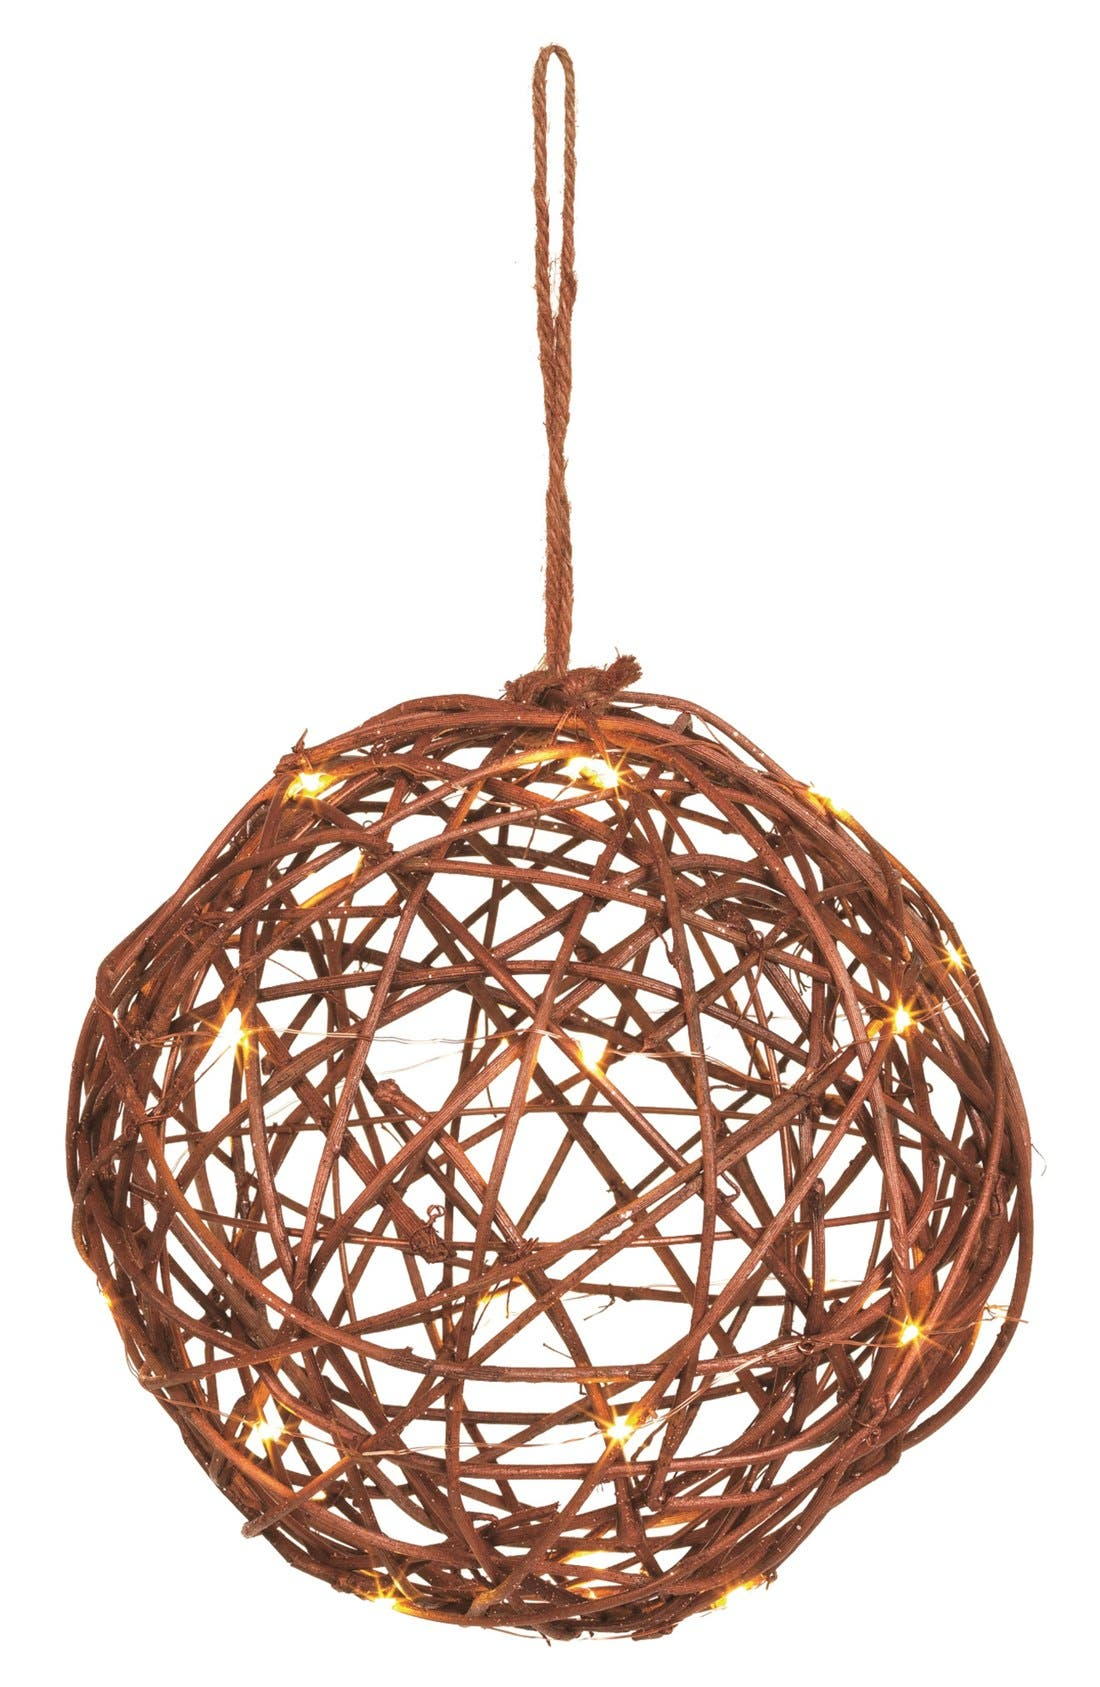 Main Image - Sage & Co. Light Up Rattan & Wire Ball Ornament